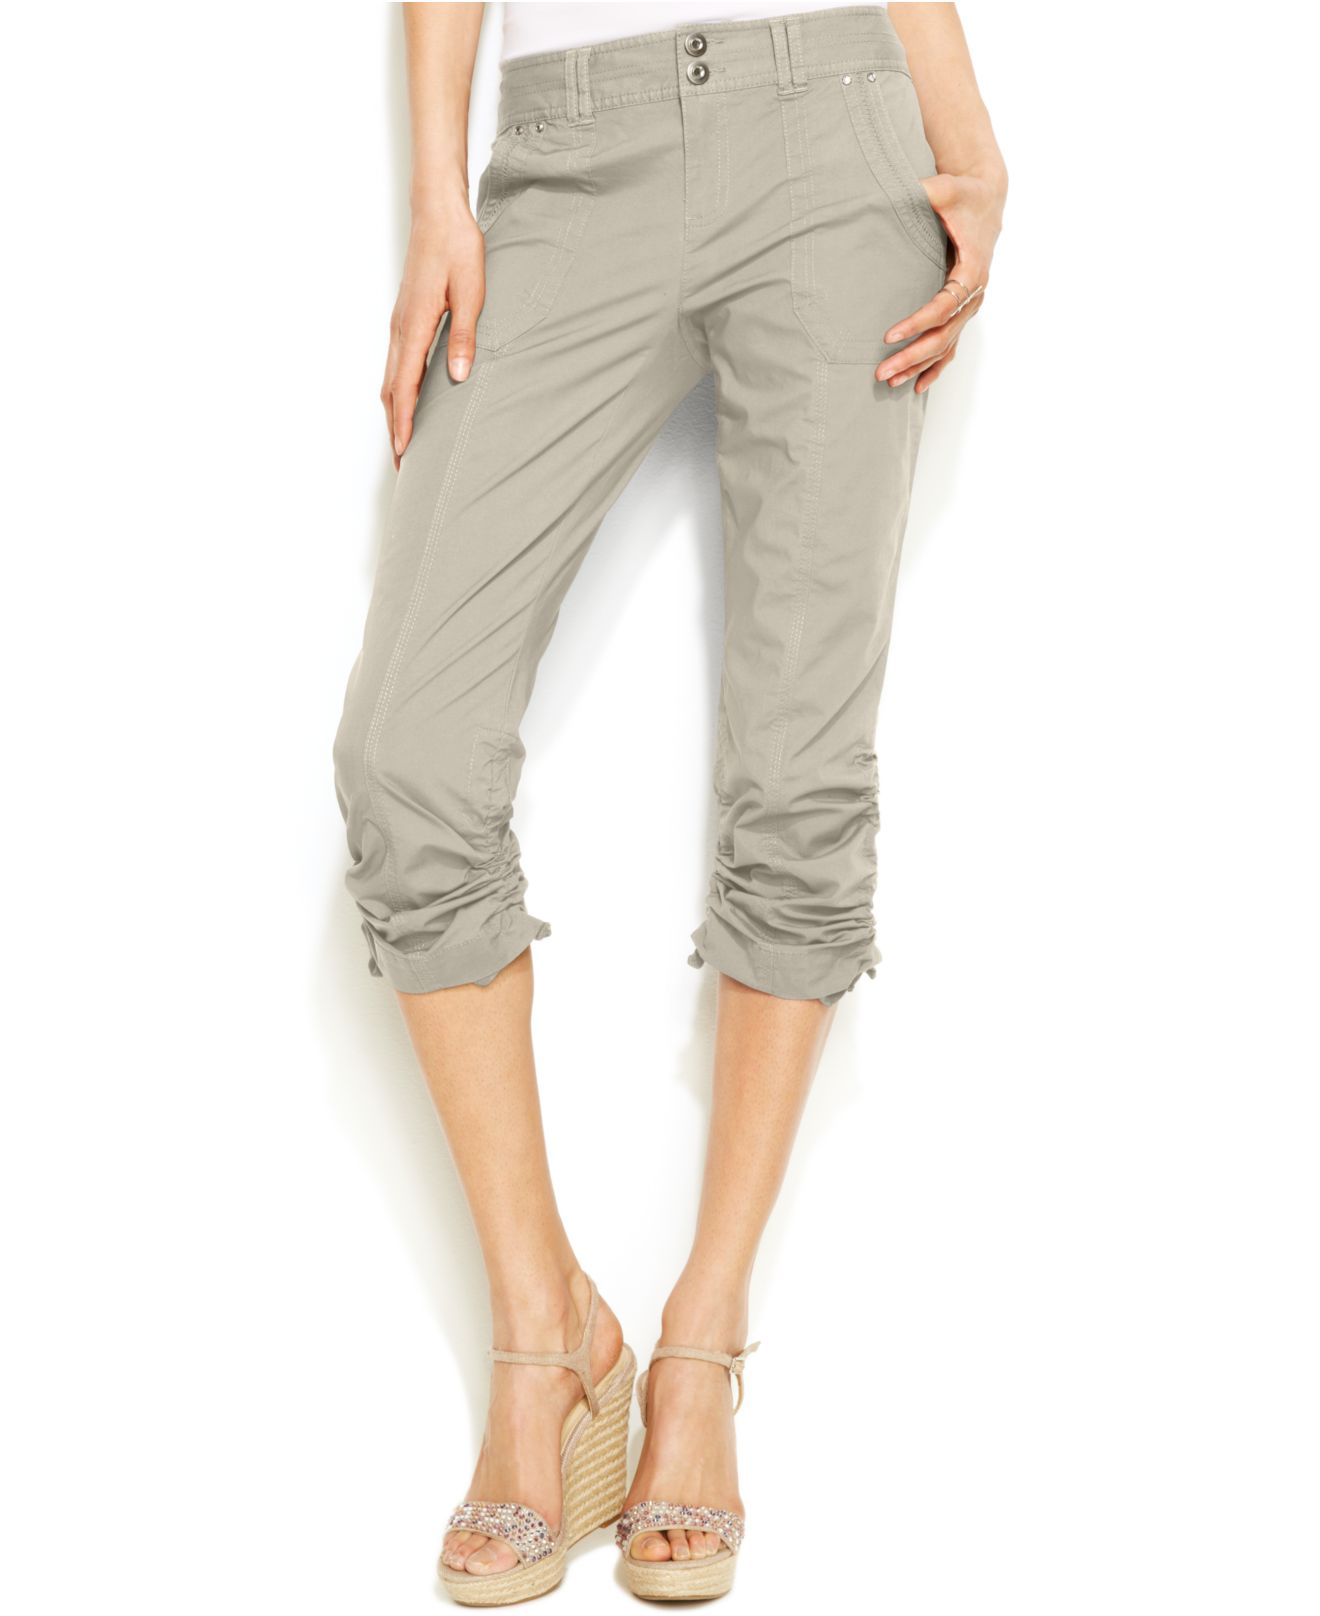 Inc international concepts Curvy-fit Ruched Capri Pants in Natural ...